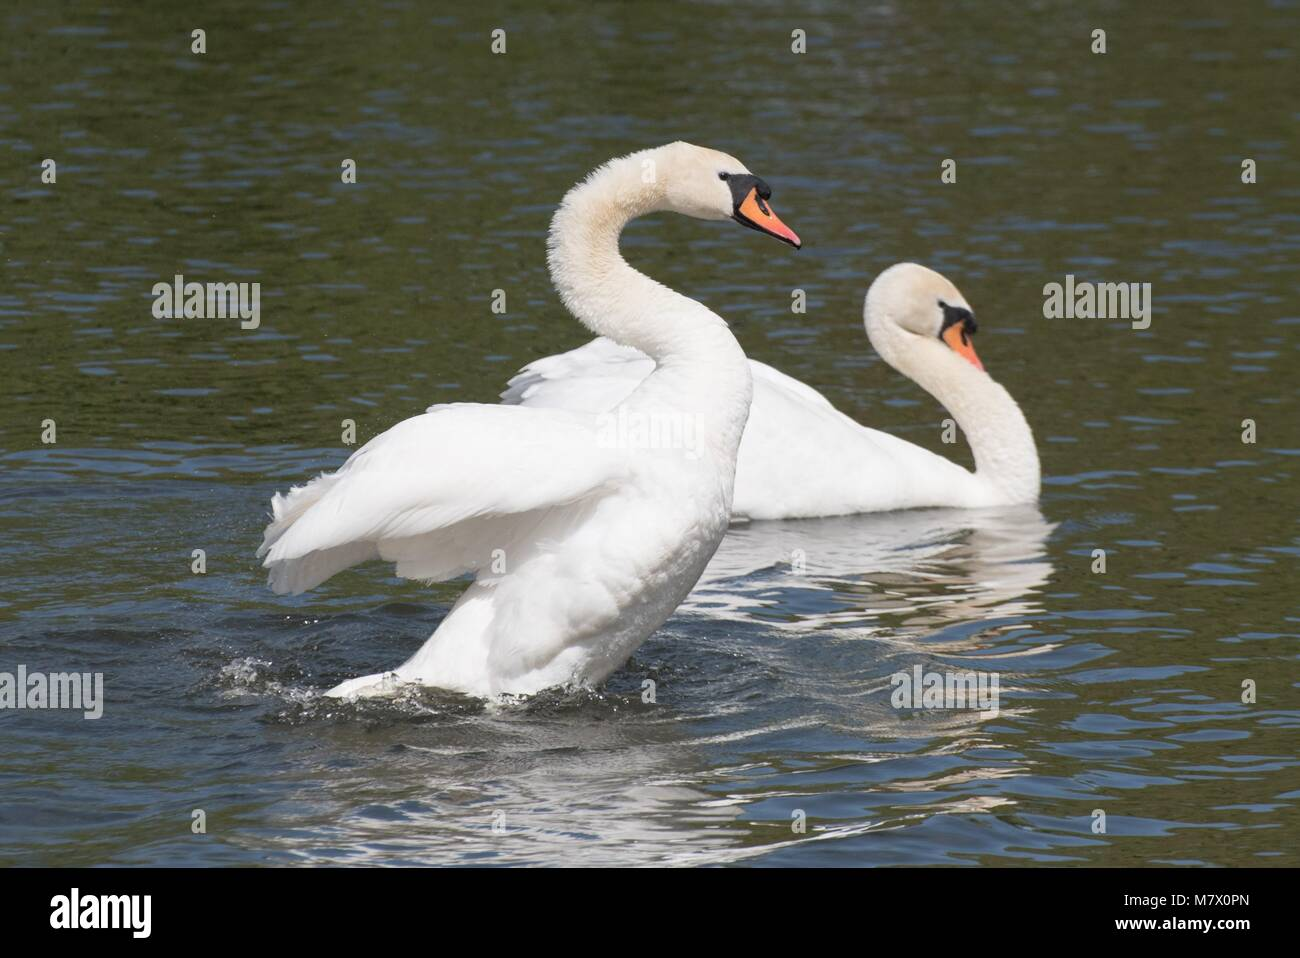 mating pair of mute swans swim next to each other and appear to have a robust argument - Stock Image